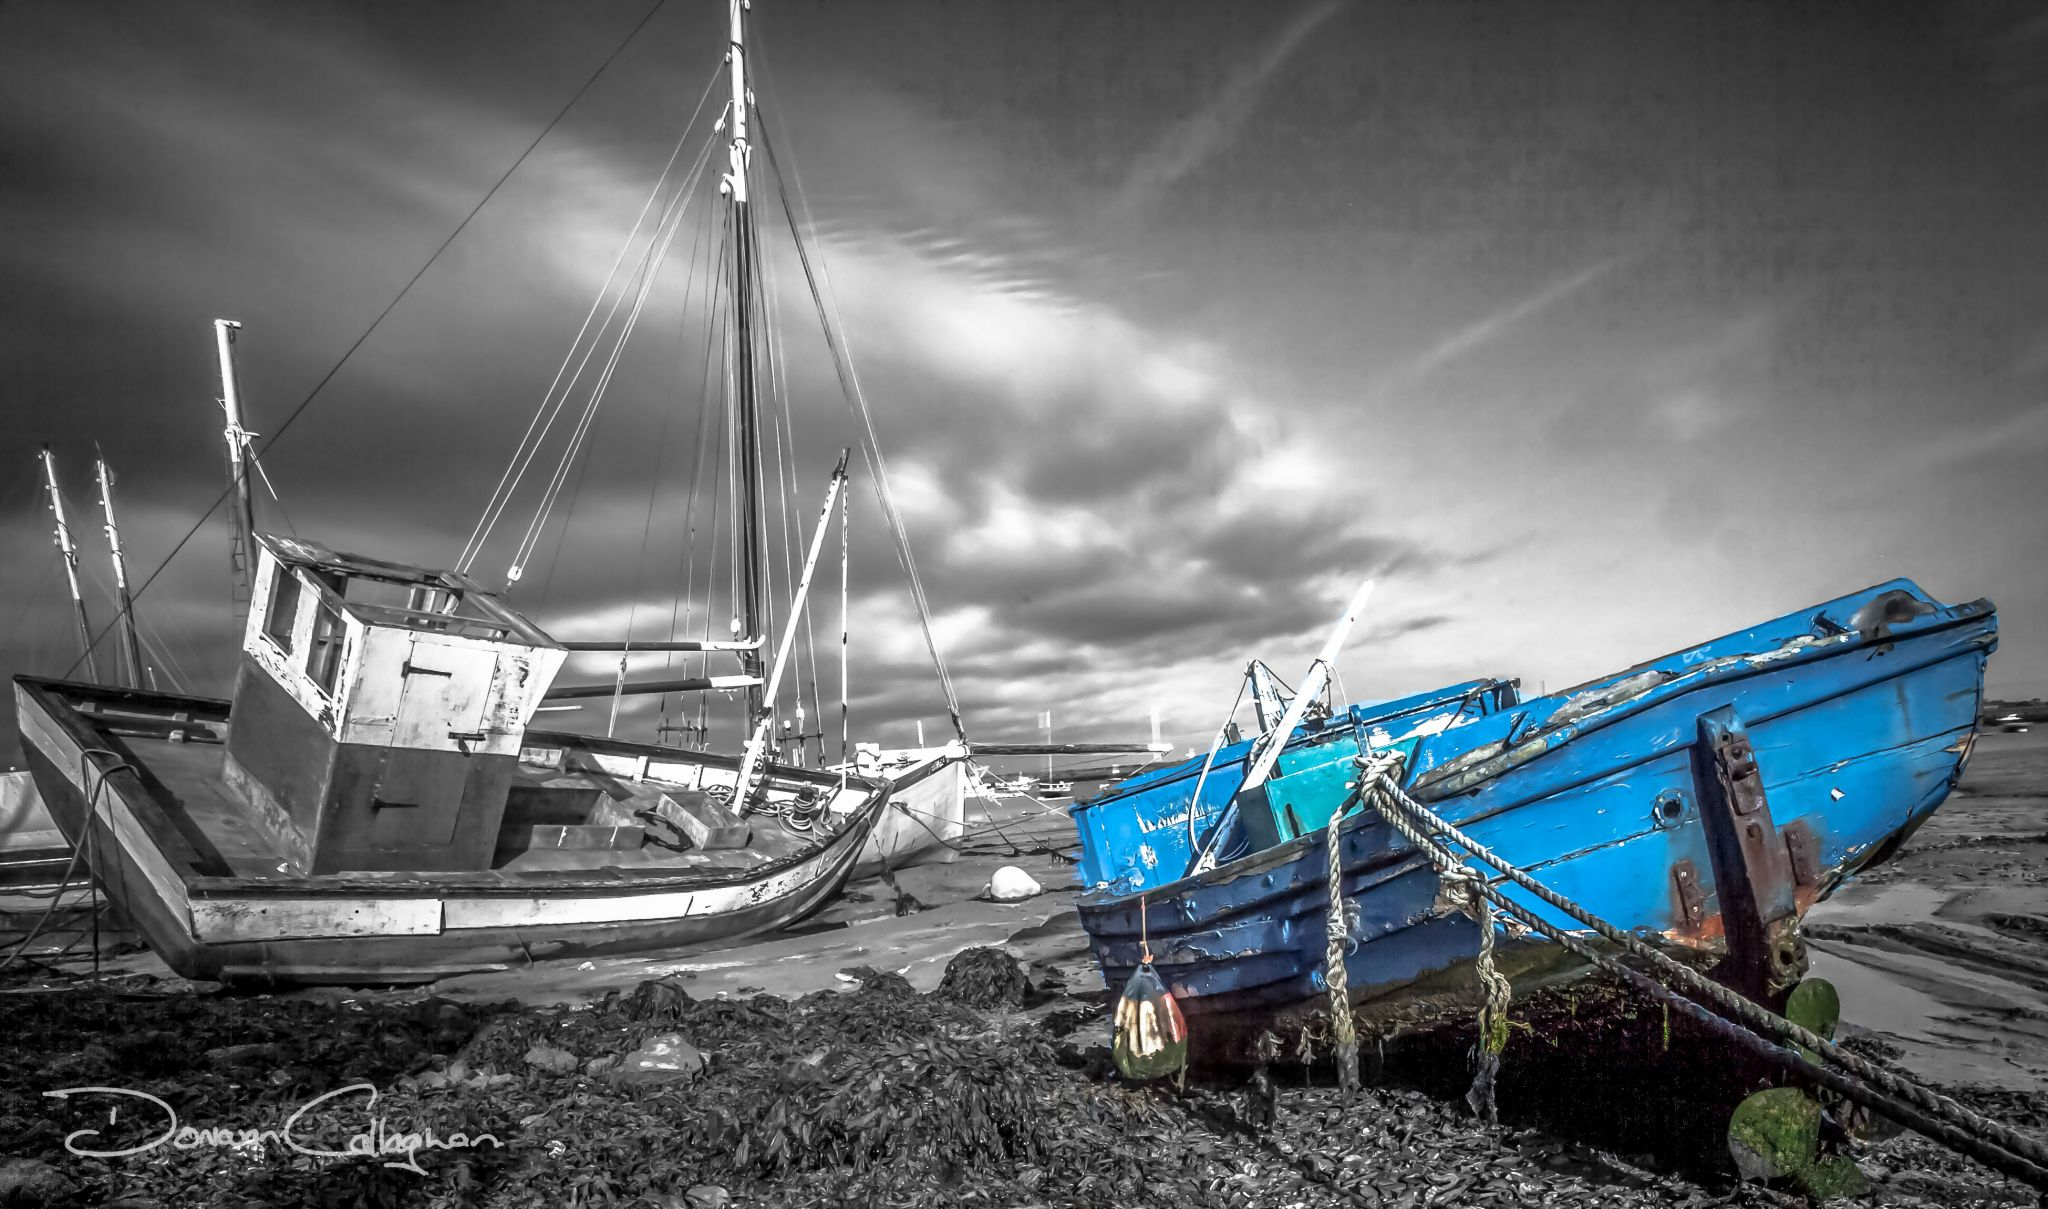 The storm is coming, Mersea Island, United Kingdom